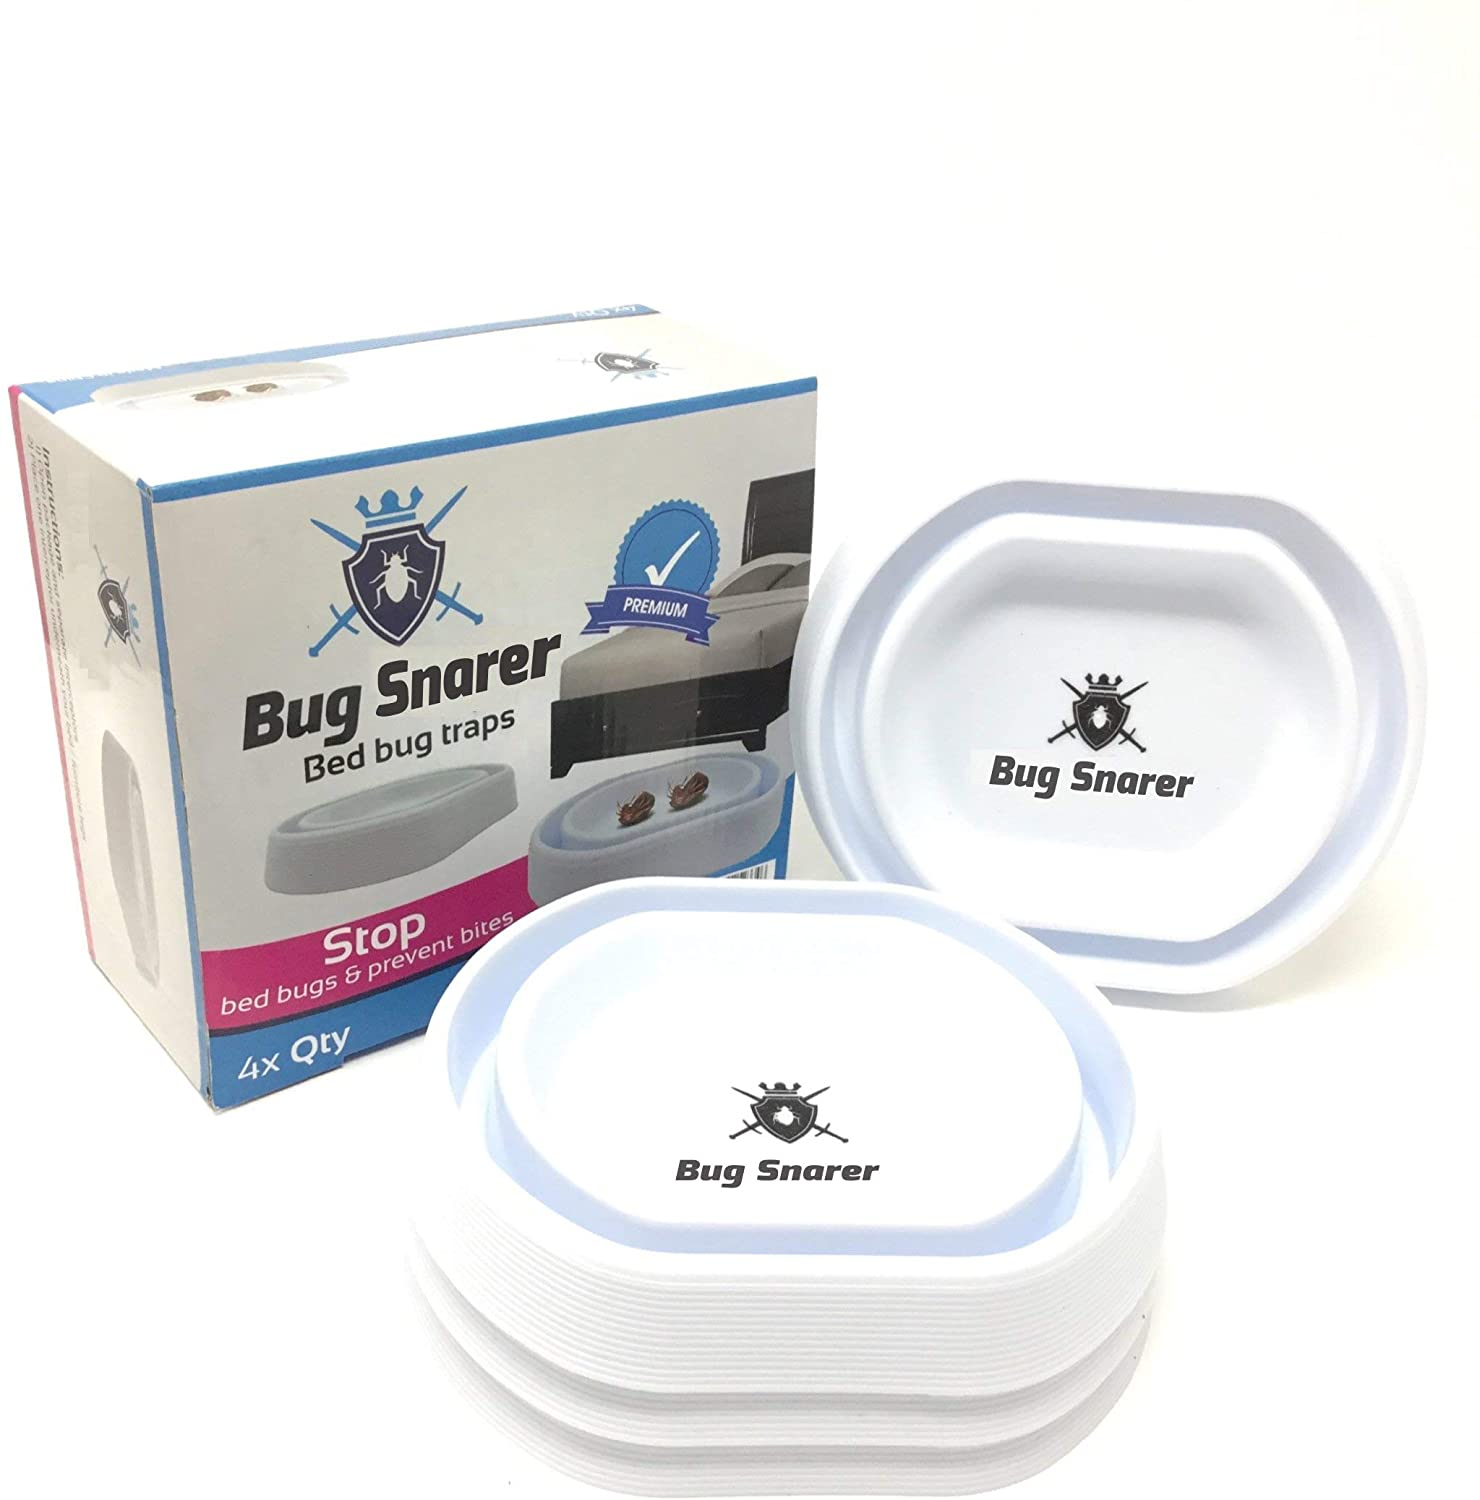 Bug Snarer Bed Bug Trap | Bed Leg Protection and Bedbug Prevention | Eco Friendly and Baby Safe Bed Bug Detector | Premium Bed Bug Interceptors, Detectors, Traps for Bed Bugs Treatment (4 Pack)